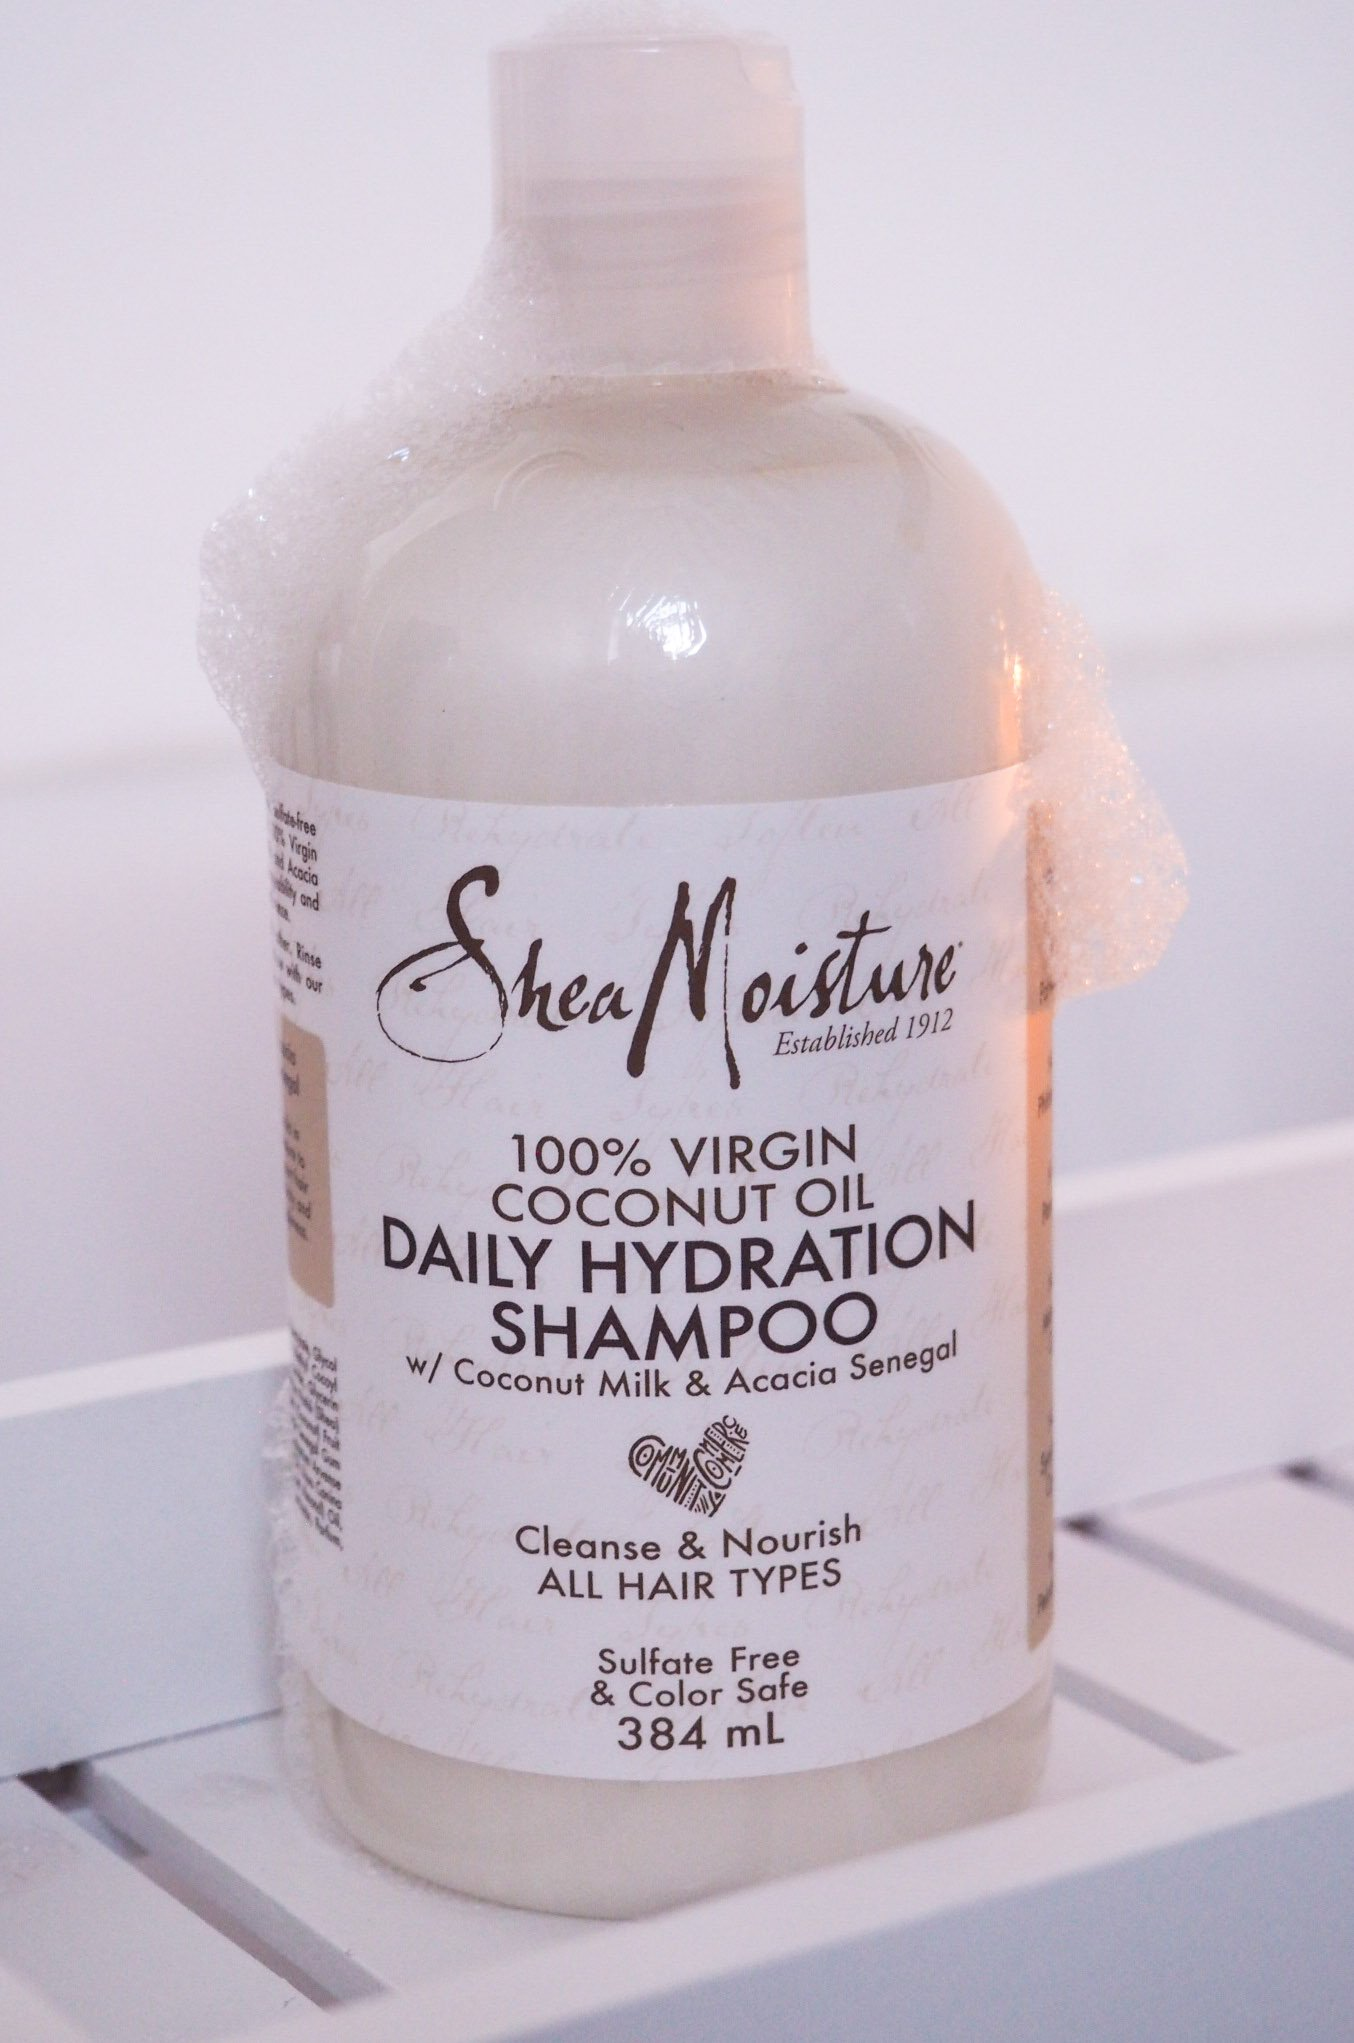 Shea Moisture 100% Virgin Coconut Oil Hydration Hair Care Range Review